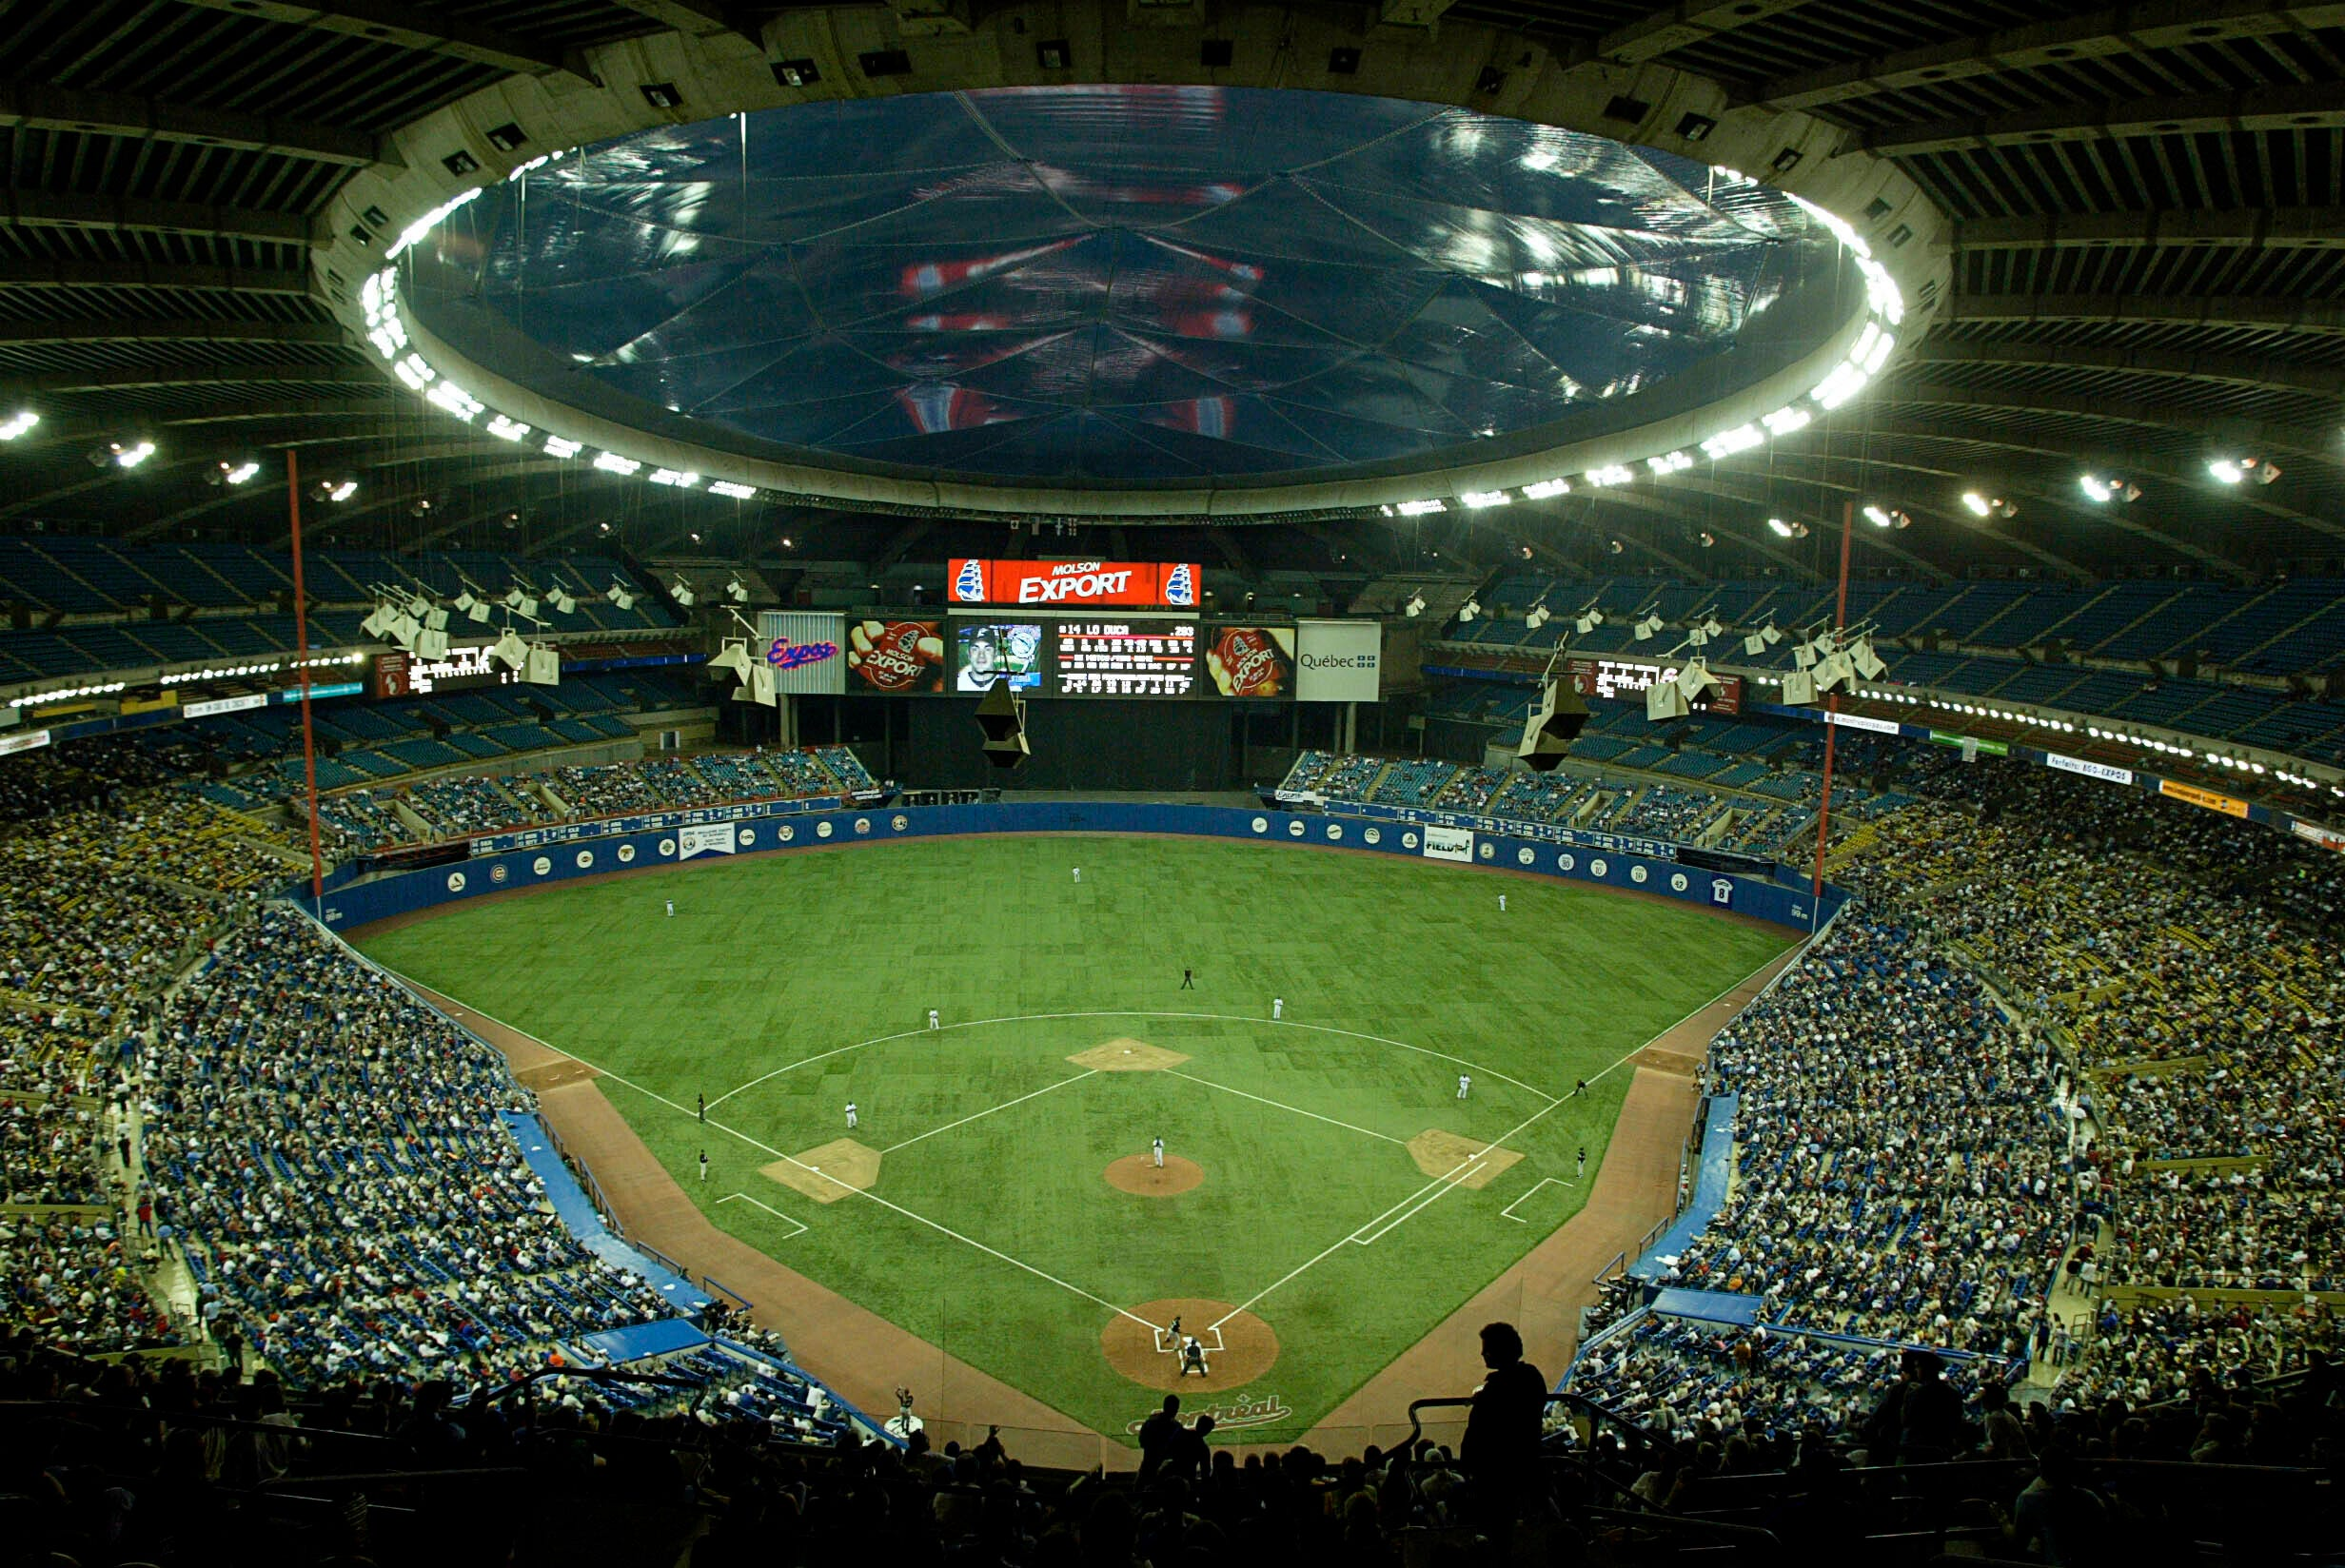 tampa bay gets ok from mlb to explore montreal tampa bay gets ok from mlb to explore